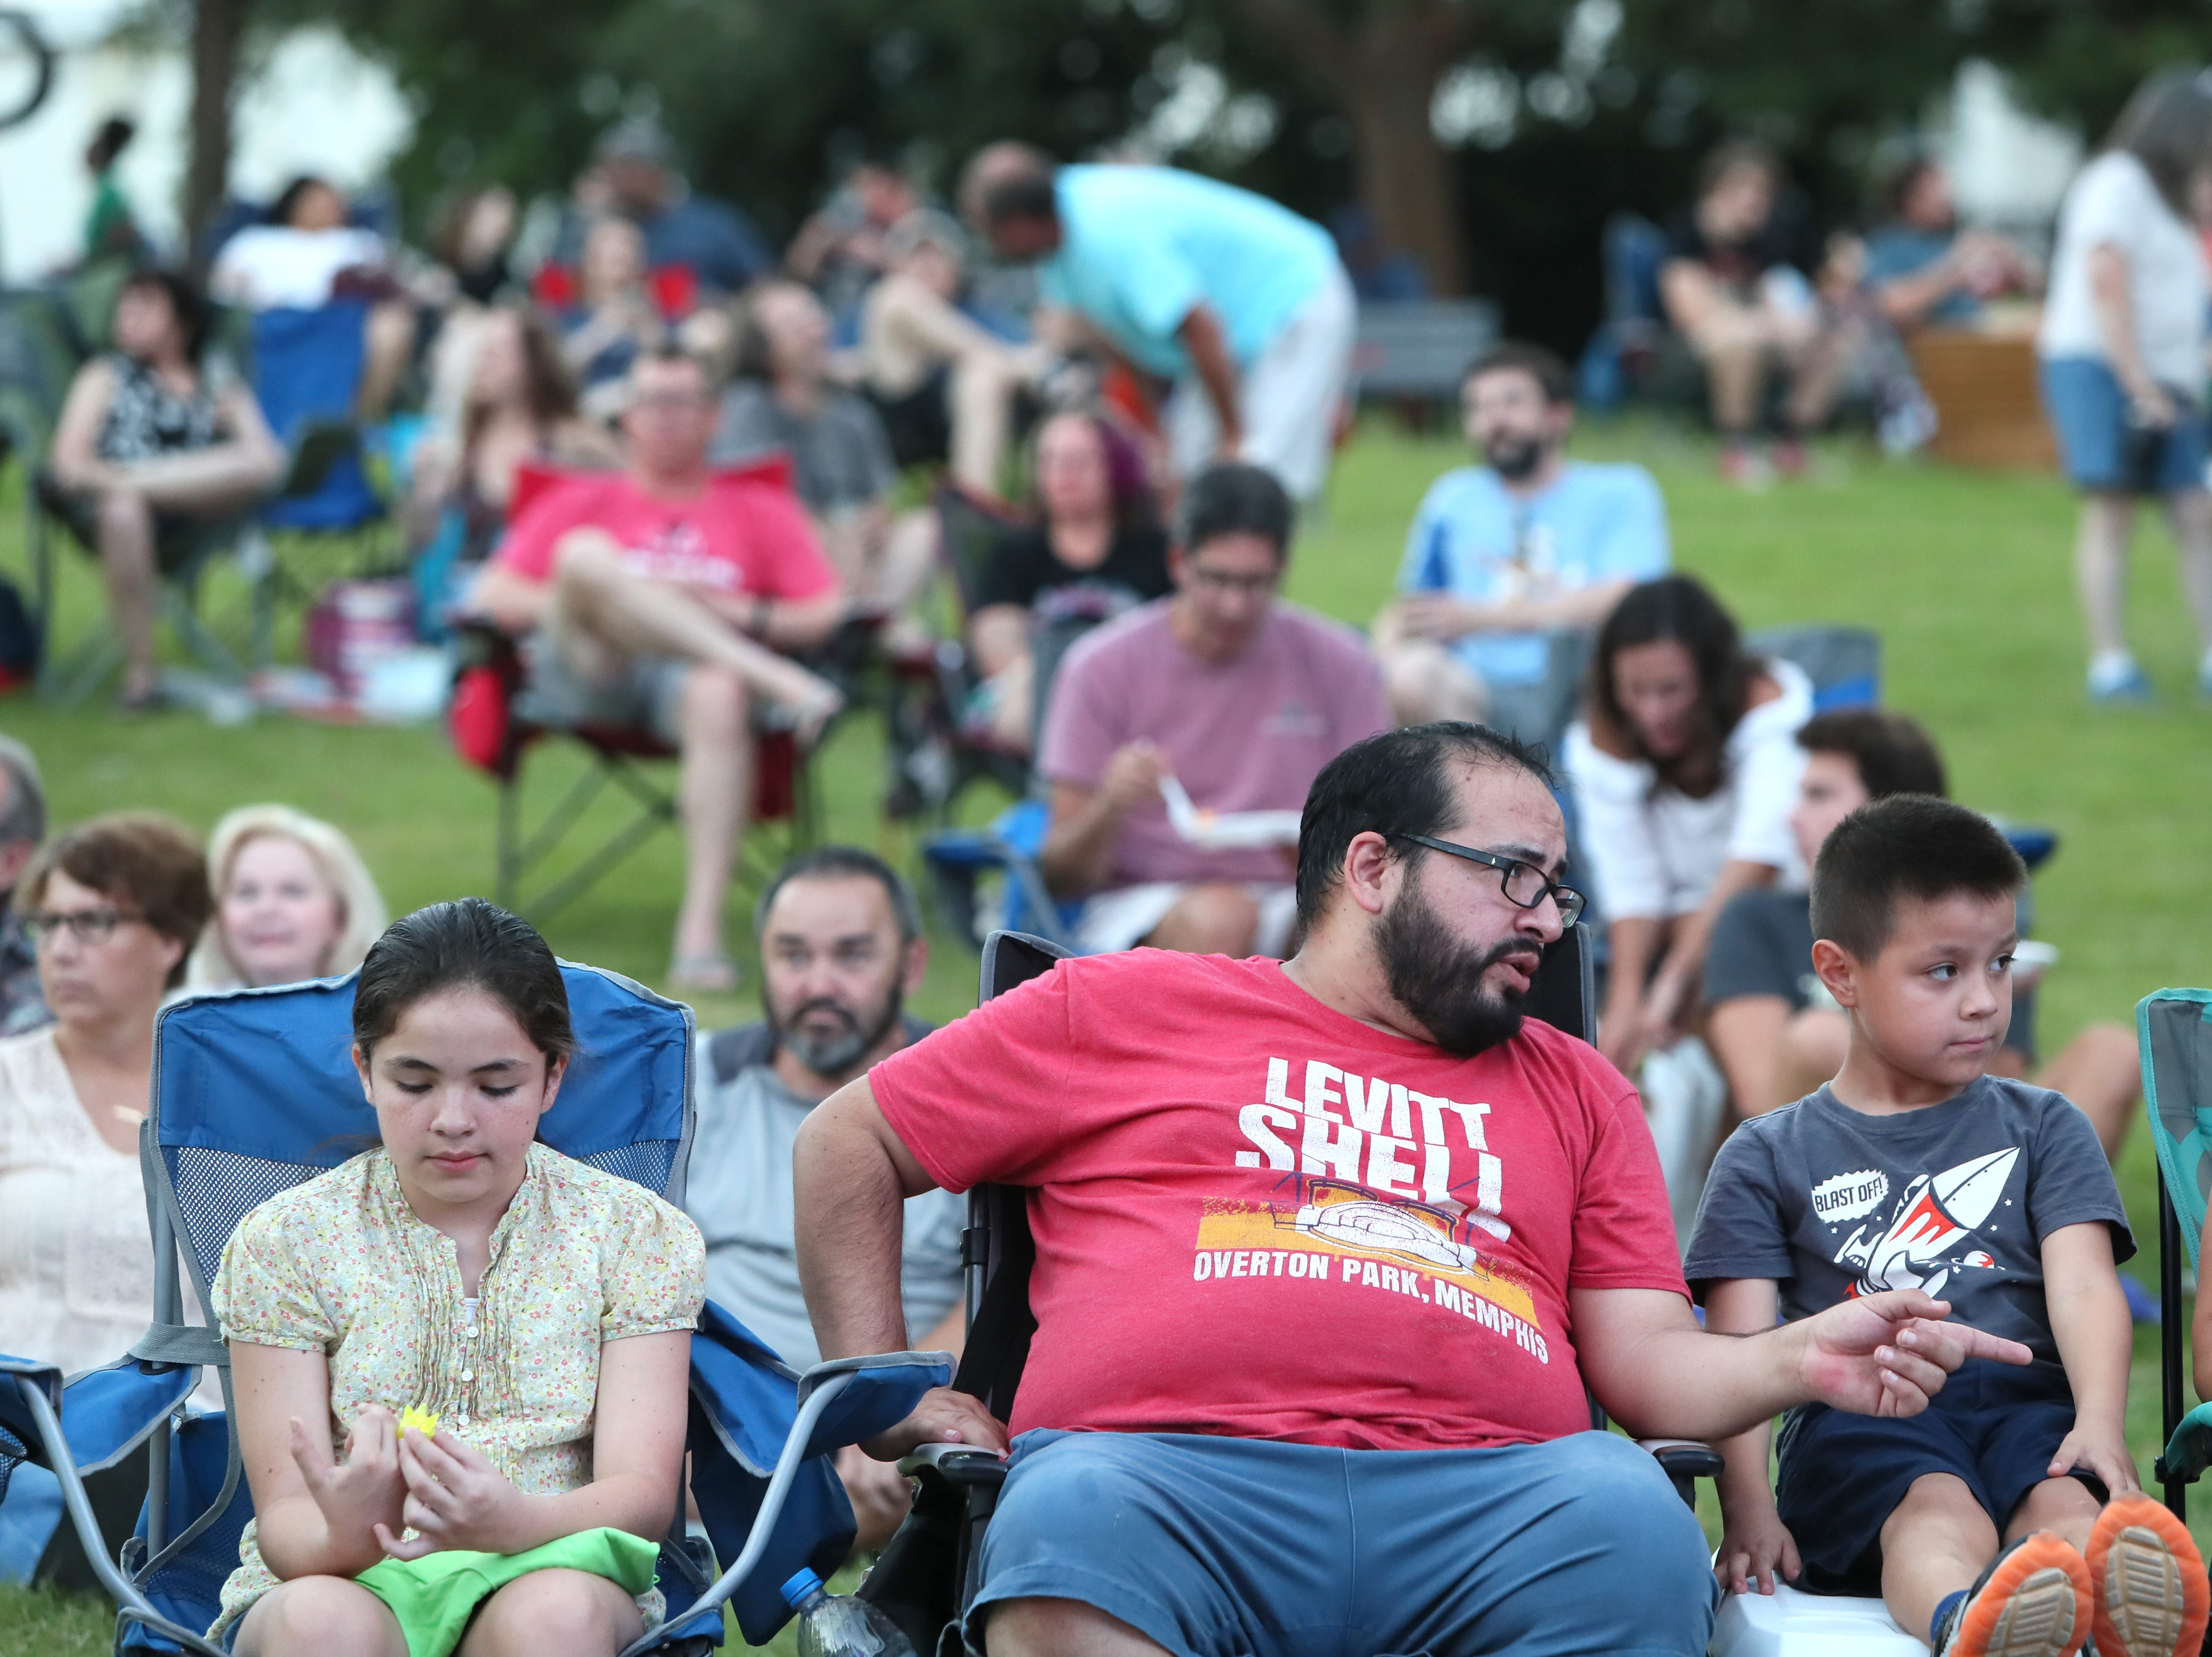 People gather at the Levitt Shell in Overton Park for the Fall Concert Series featuring the musical group Those Pretty Wrongs on Sunday, Sept. 16, 2018.